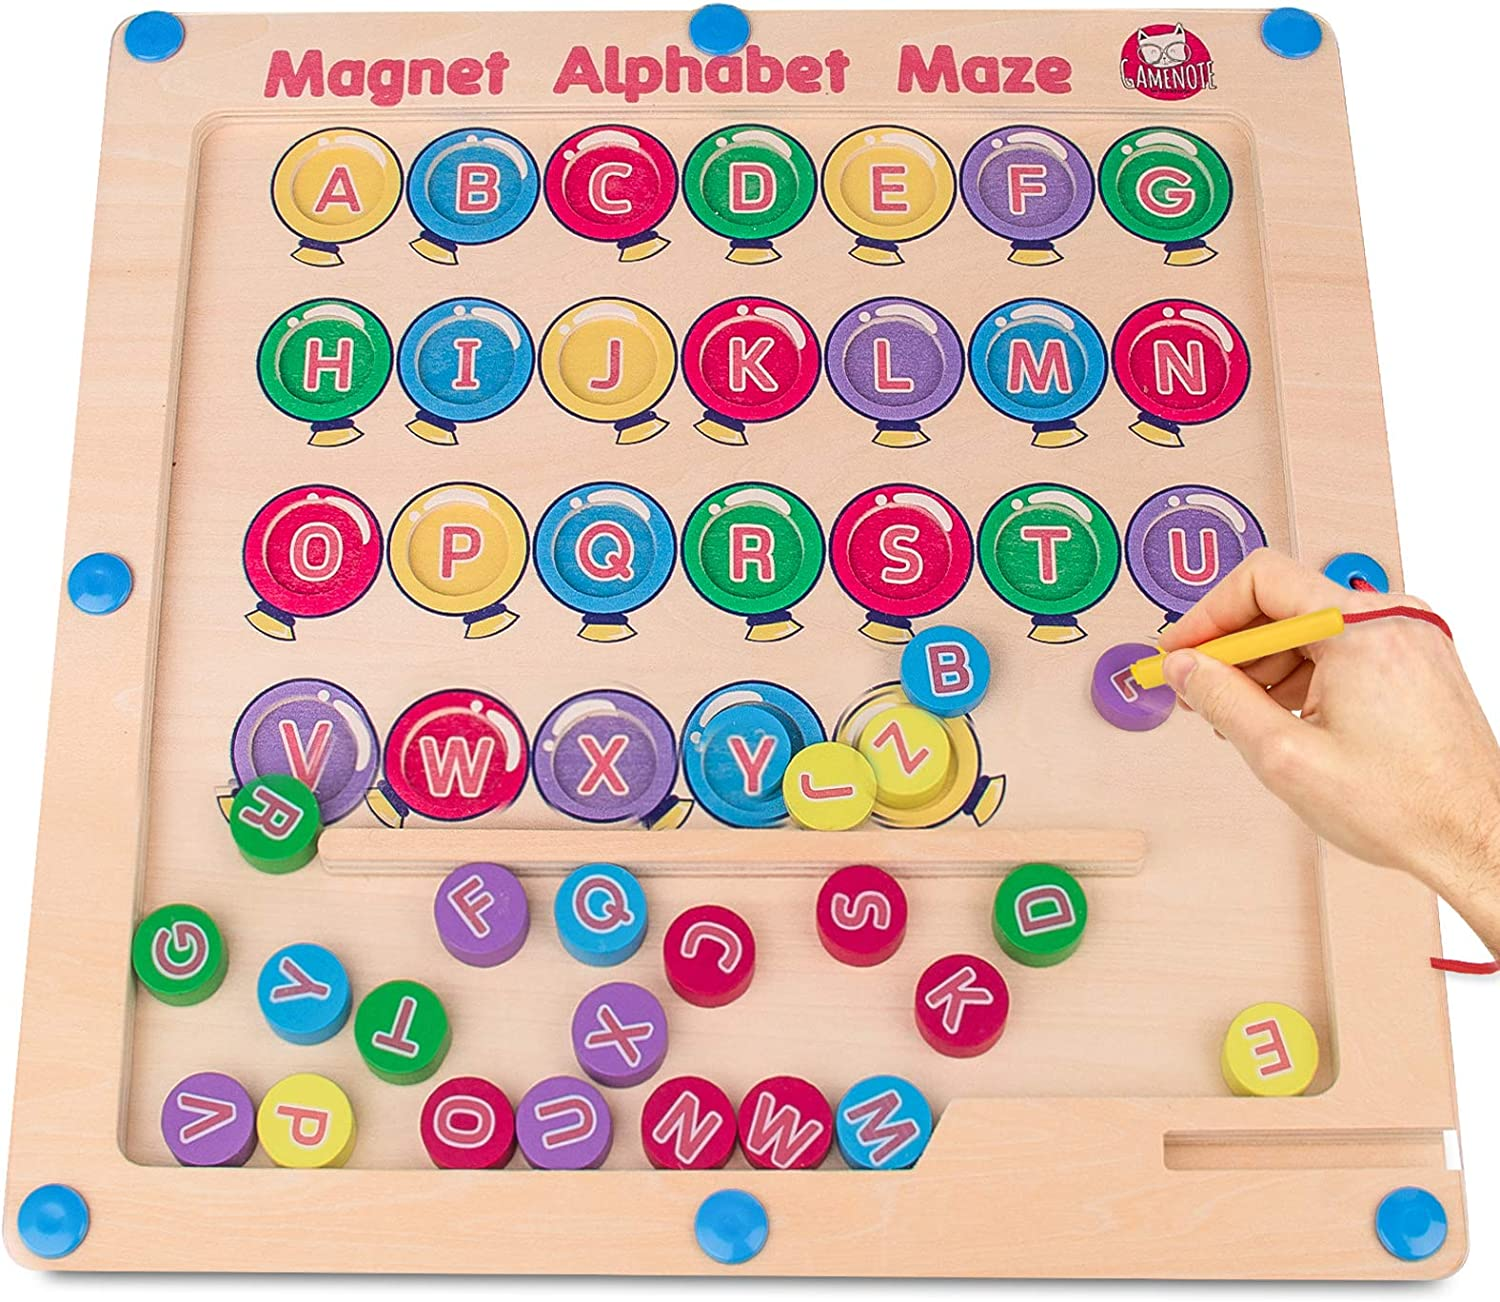 26 Double Sided Wooden Fish with 2 Magnet Poles for Letter Recognition and Learning Gamenote Magnetic Alphabet Fishing Game for Toddlers Activity Guide Include